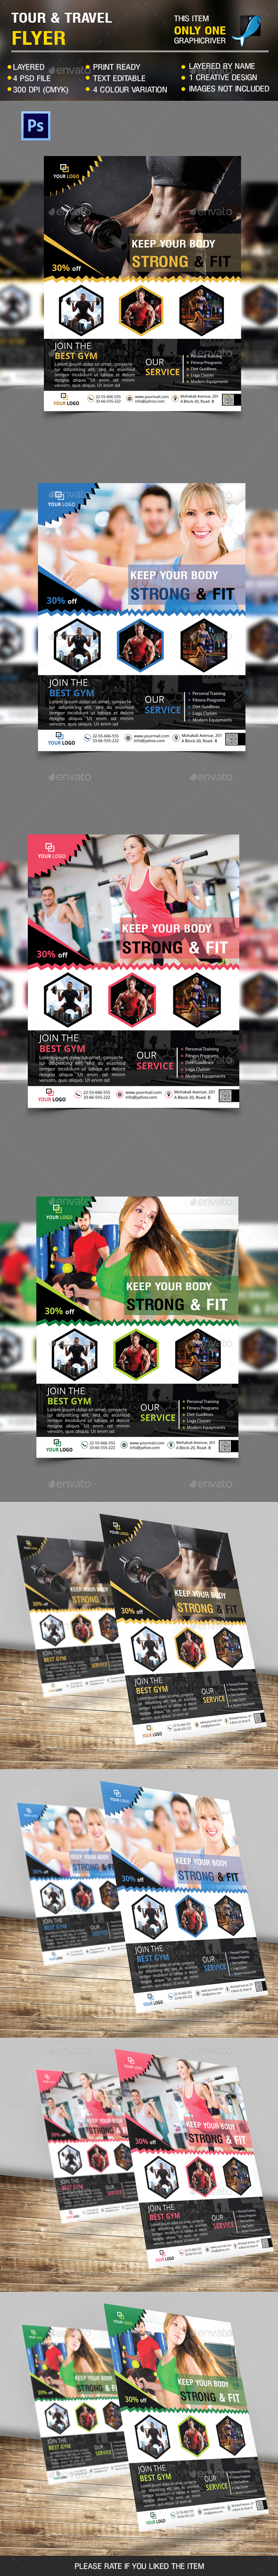 Fitness & Gym Flyer vol 3 - Sports Events